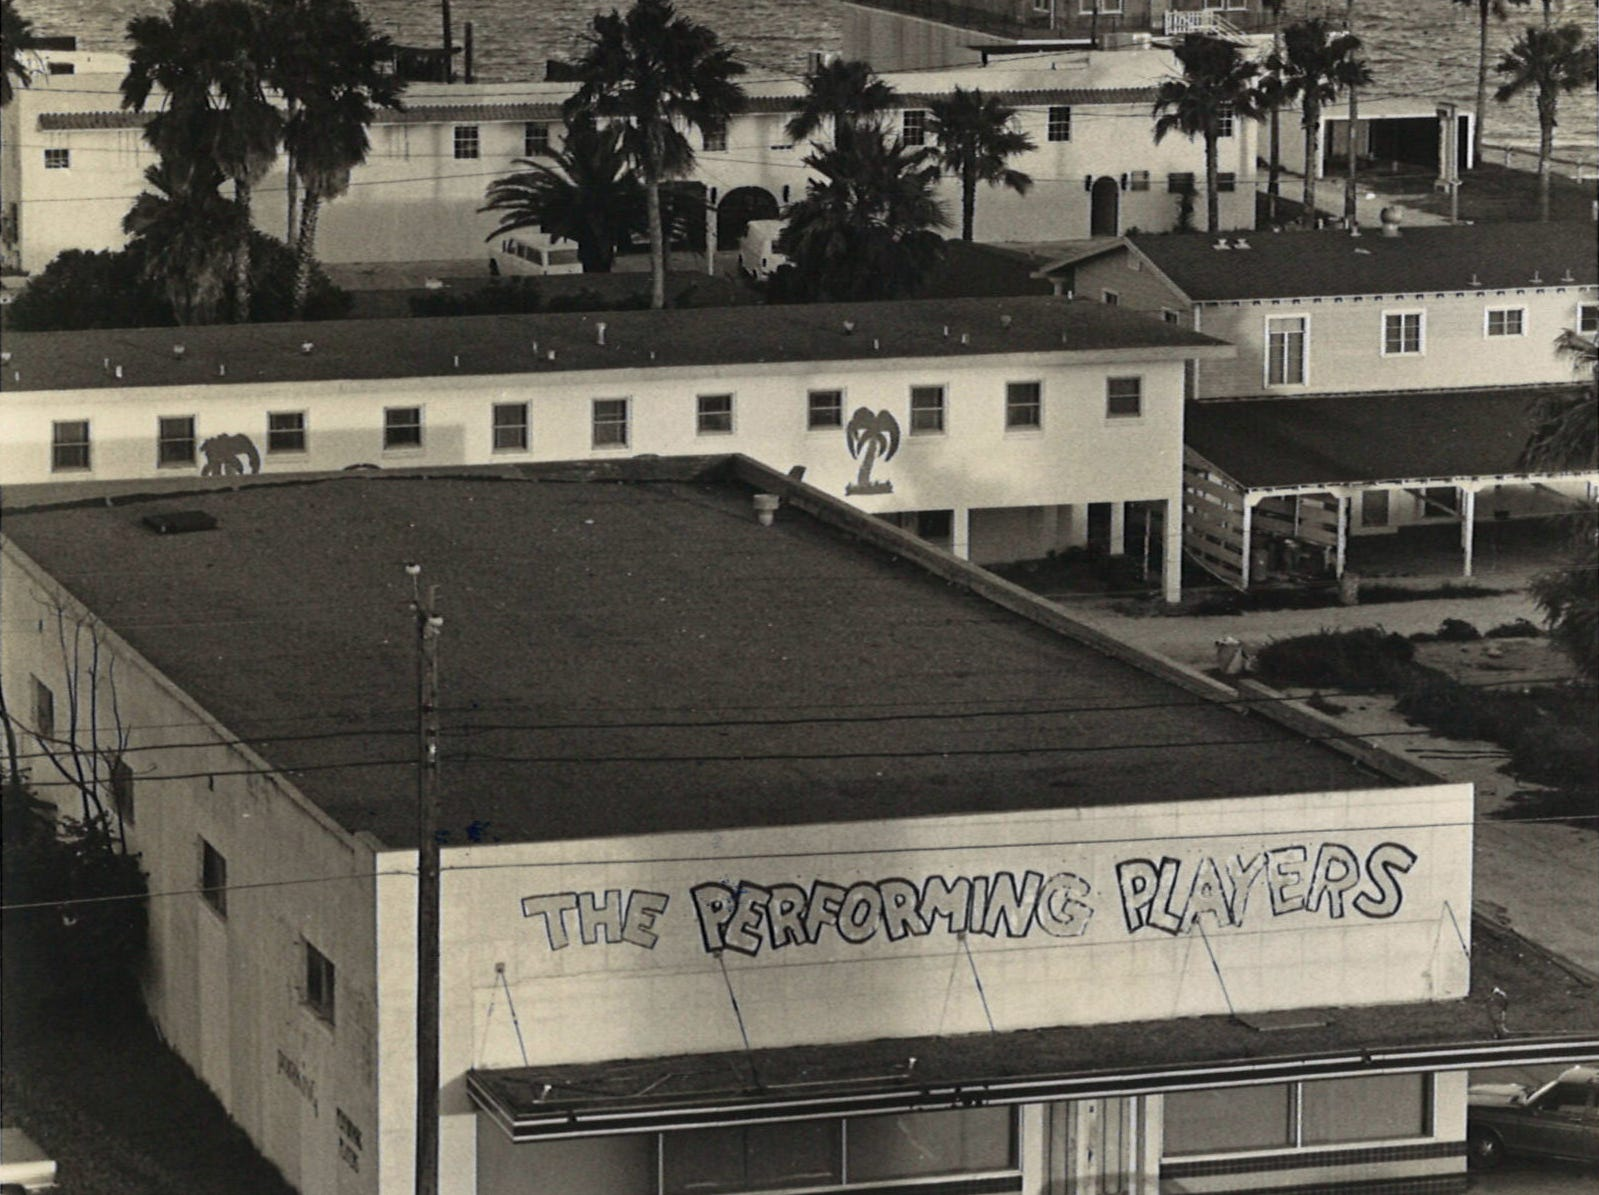 DAC Playhouse on Corpus Christi's North Beach was the home of the Performing Players acting troupe. The theater, seen here in June 5, 1977, was an old HEB store.